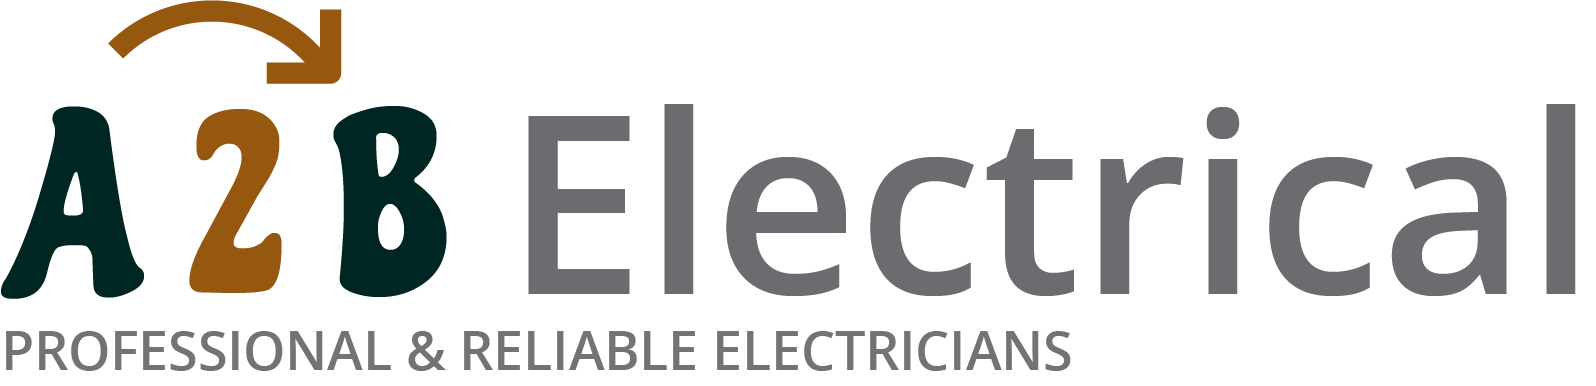 If you have electrical wiring problems in Ilford, we can provide an electrician to have a look for you.